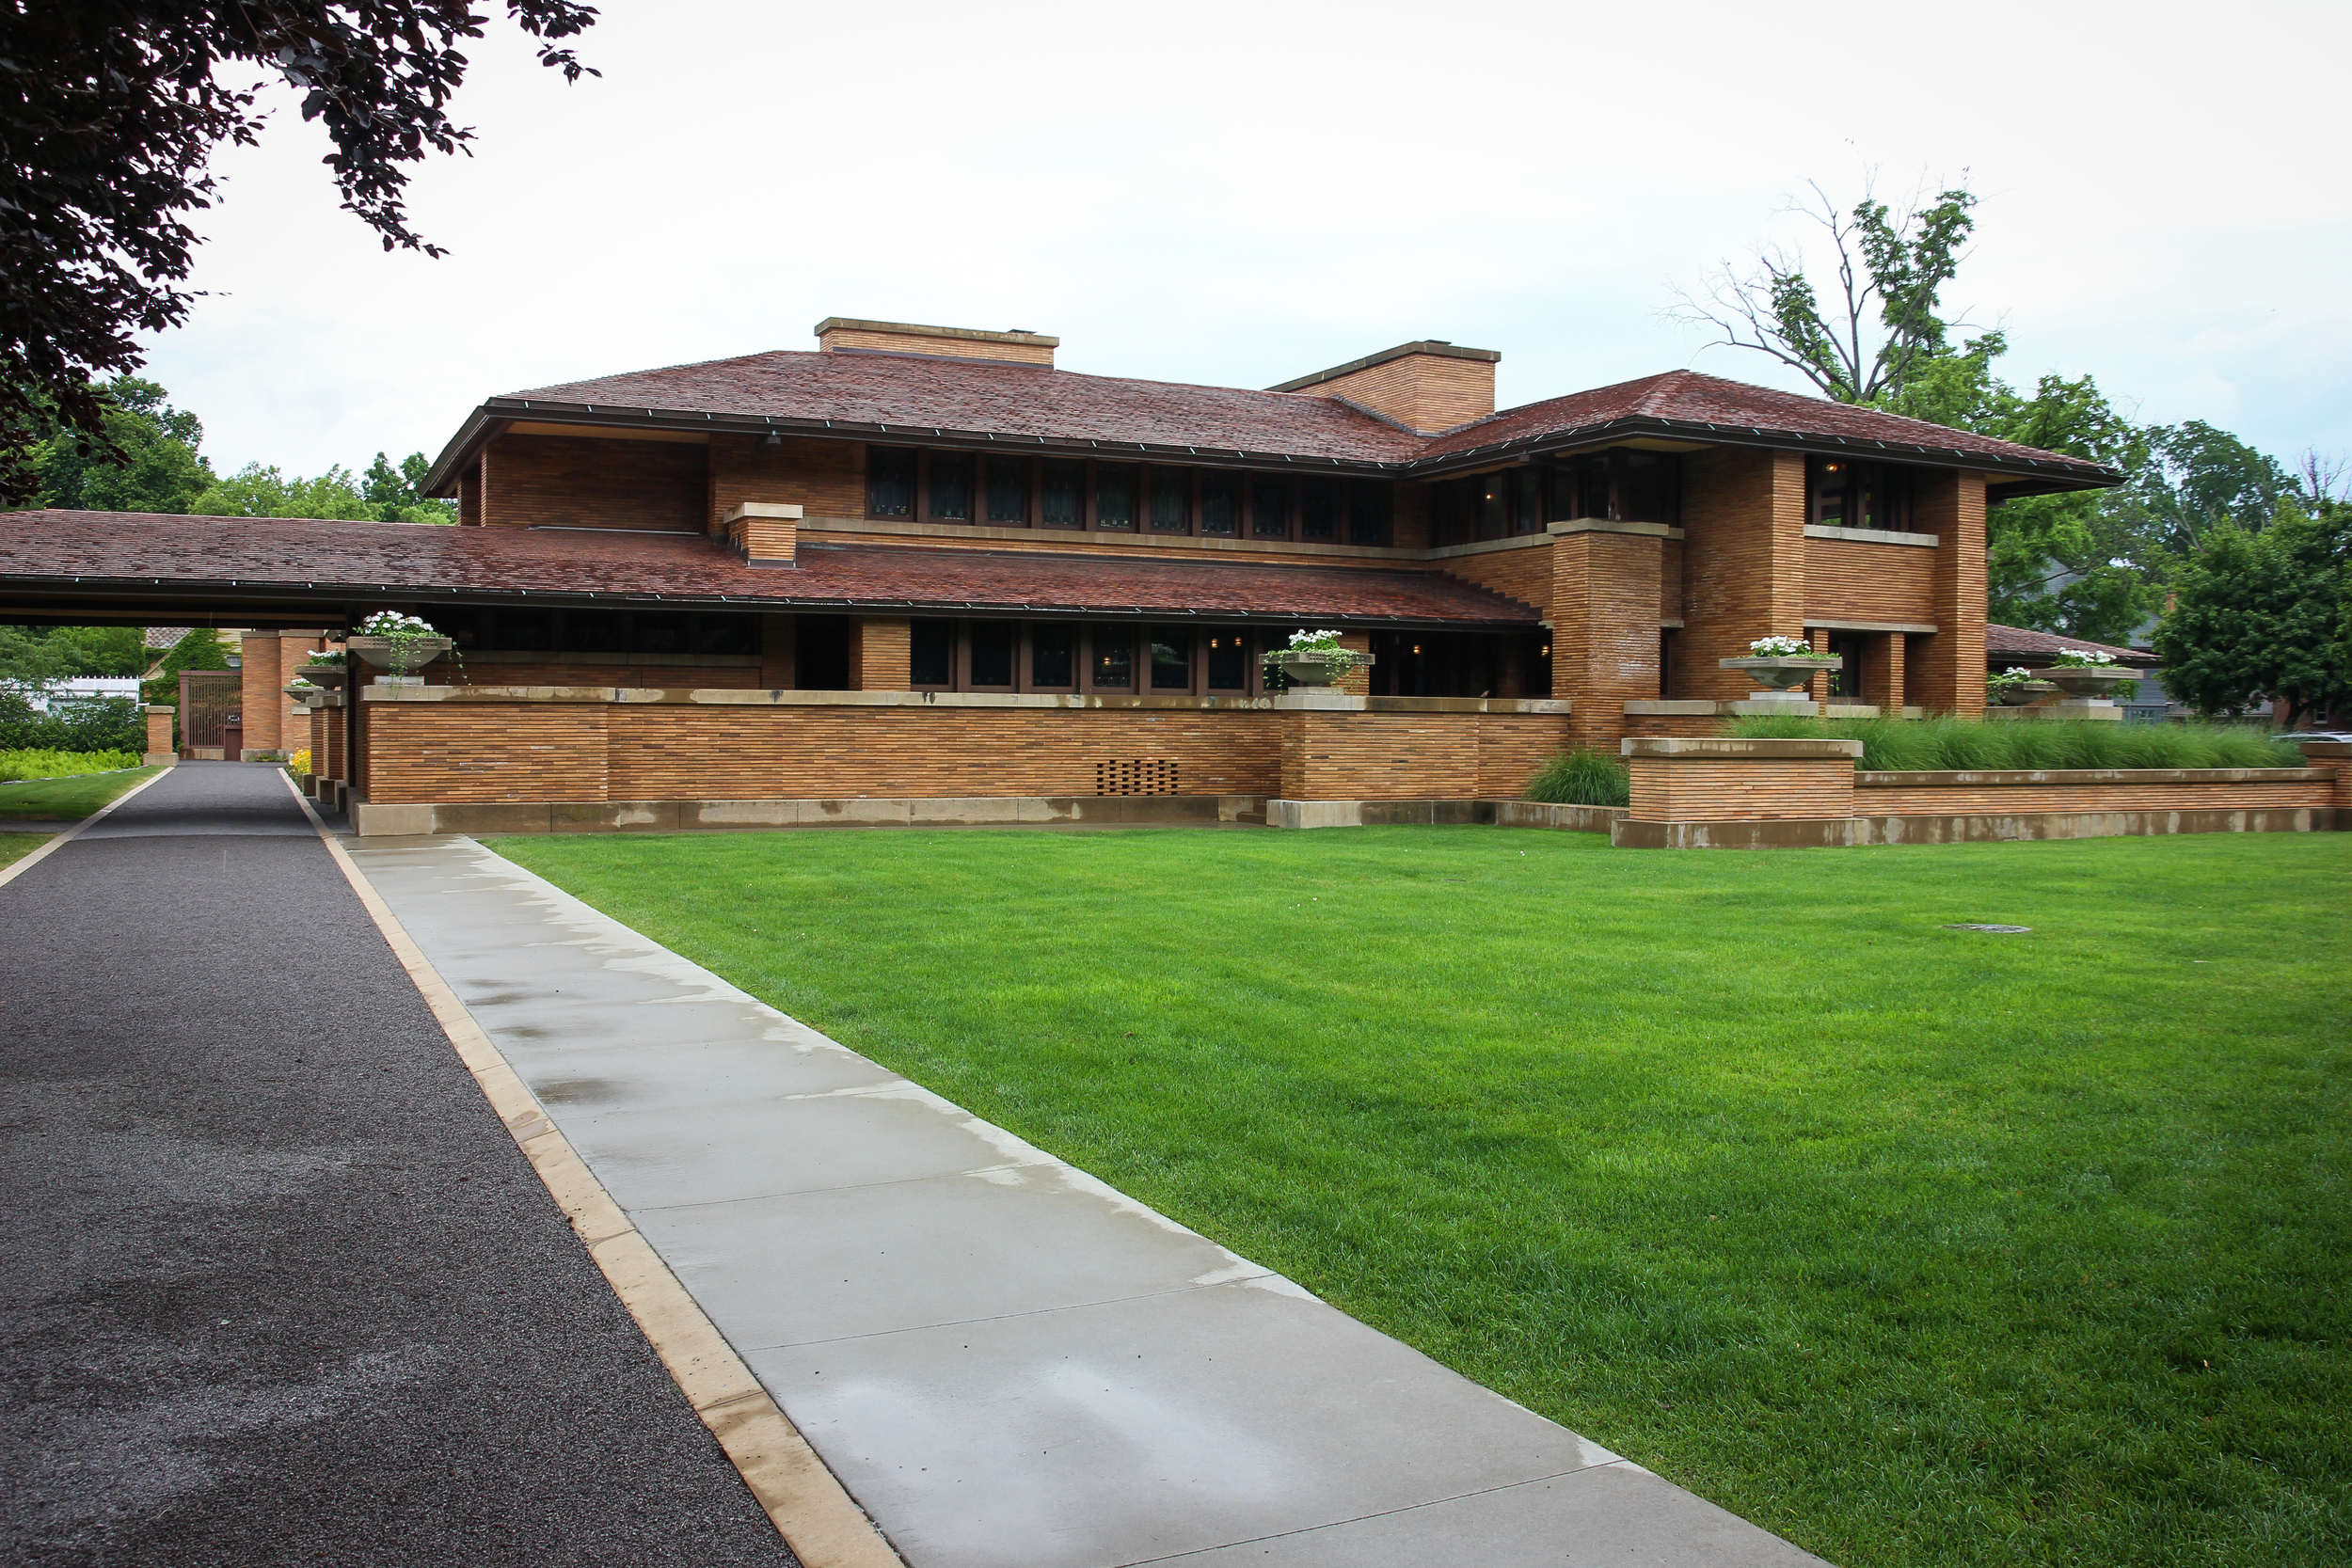 Martin's house complex by Frank Lloyd Wright.  Note that you won't see any emphasized vertical lines. No rain water drain pipes.